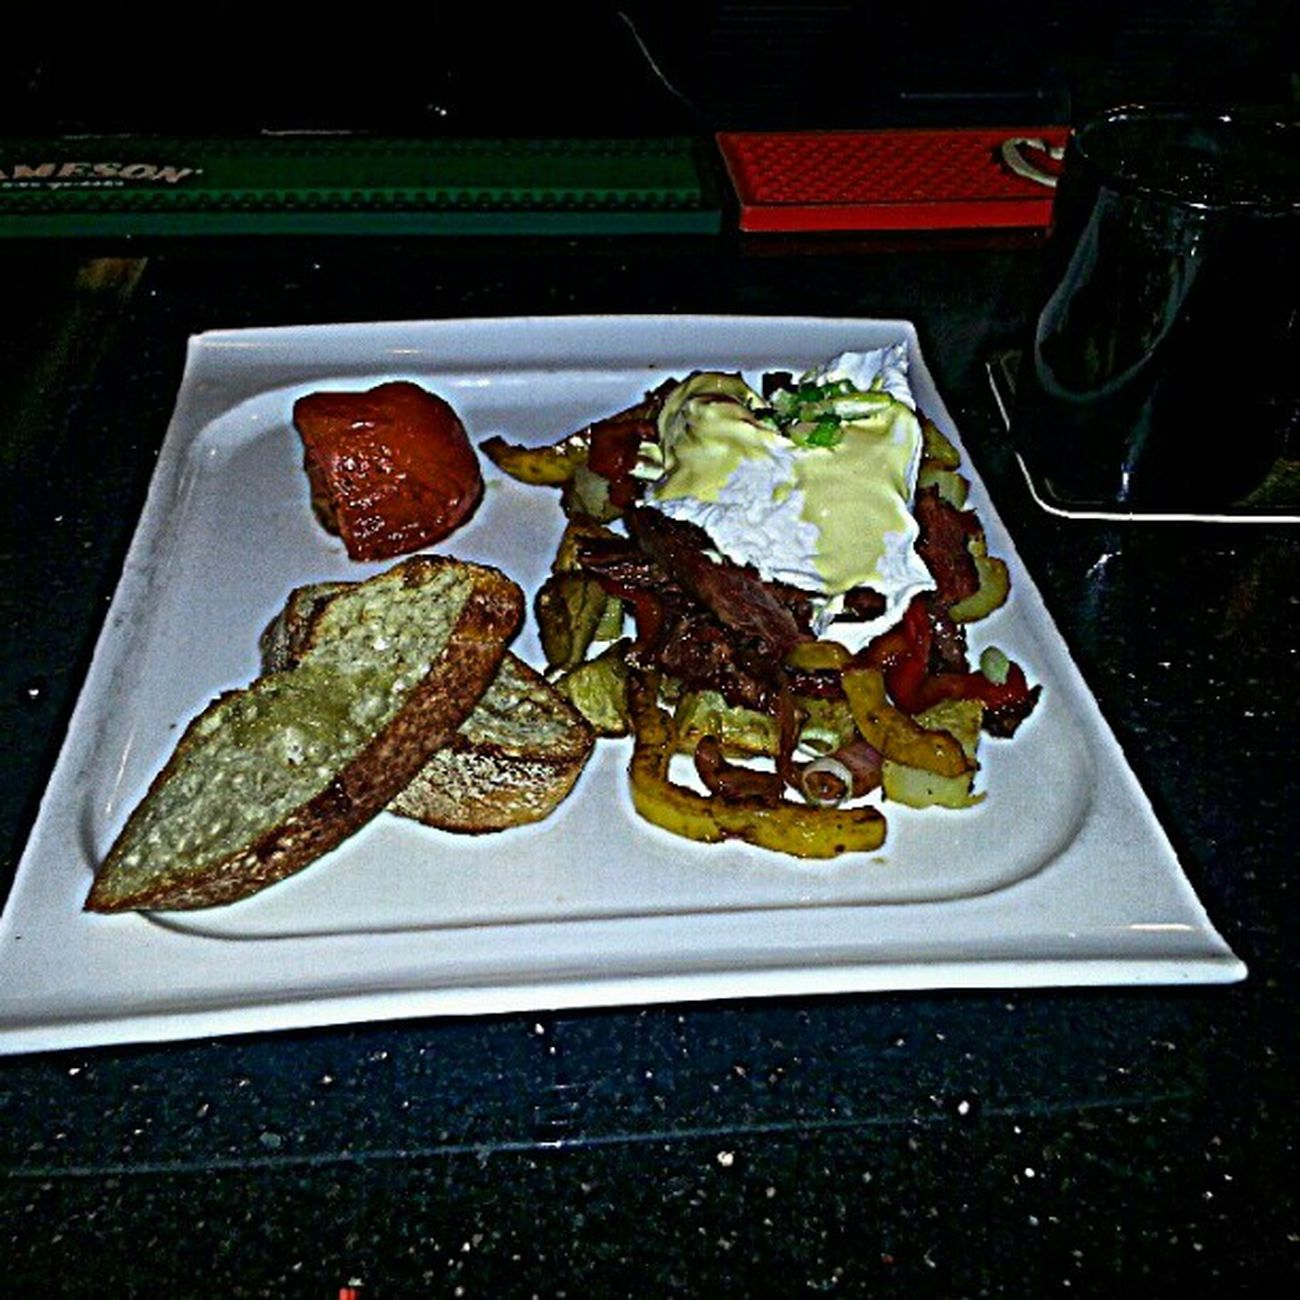 Breakfast Brunch Sunday Morning hangover beer pints downtown Vancouver cornedbeef hash eggs hollandaise winkingjudge pub